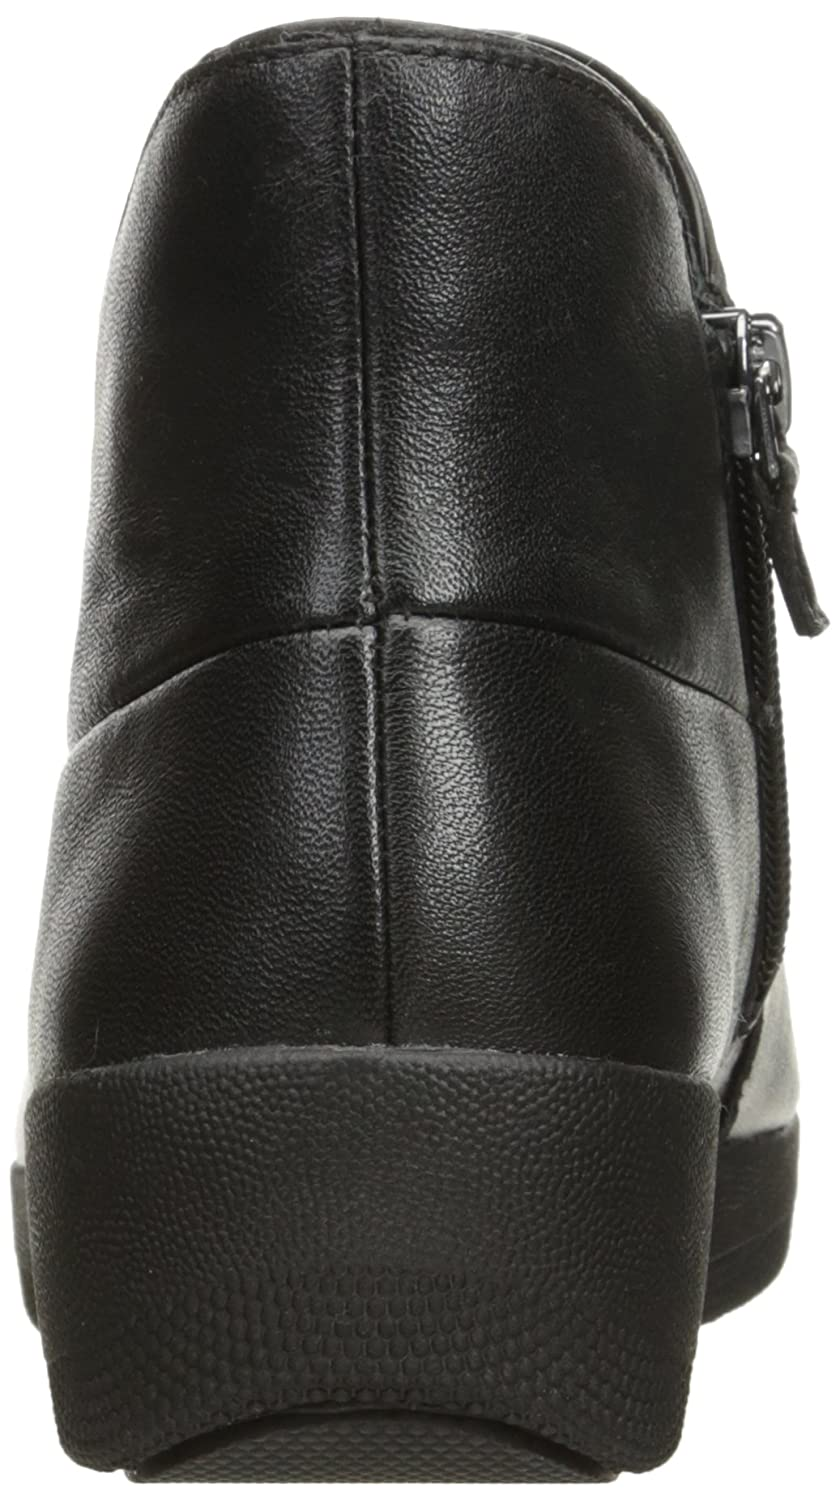 FitFlop Bootie Women's Supermod Boot Ankle Bootie FitFlop B01MXXXHKI 10 B(M) US|All Black 61e011